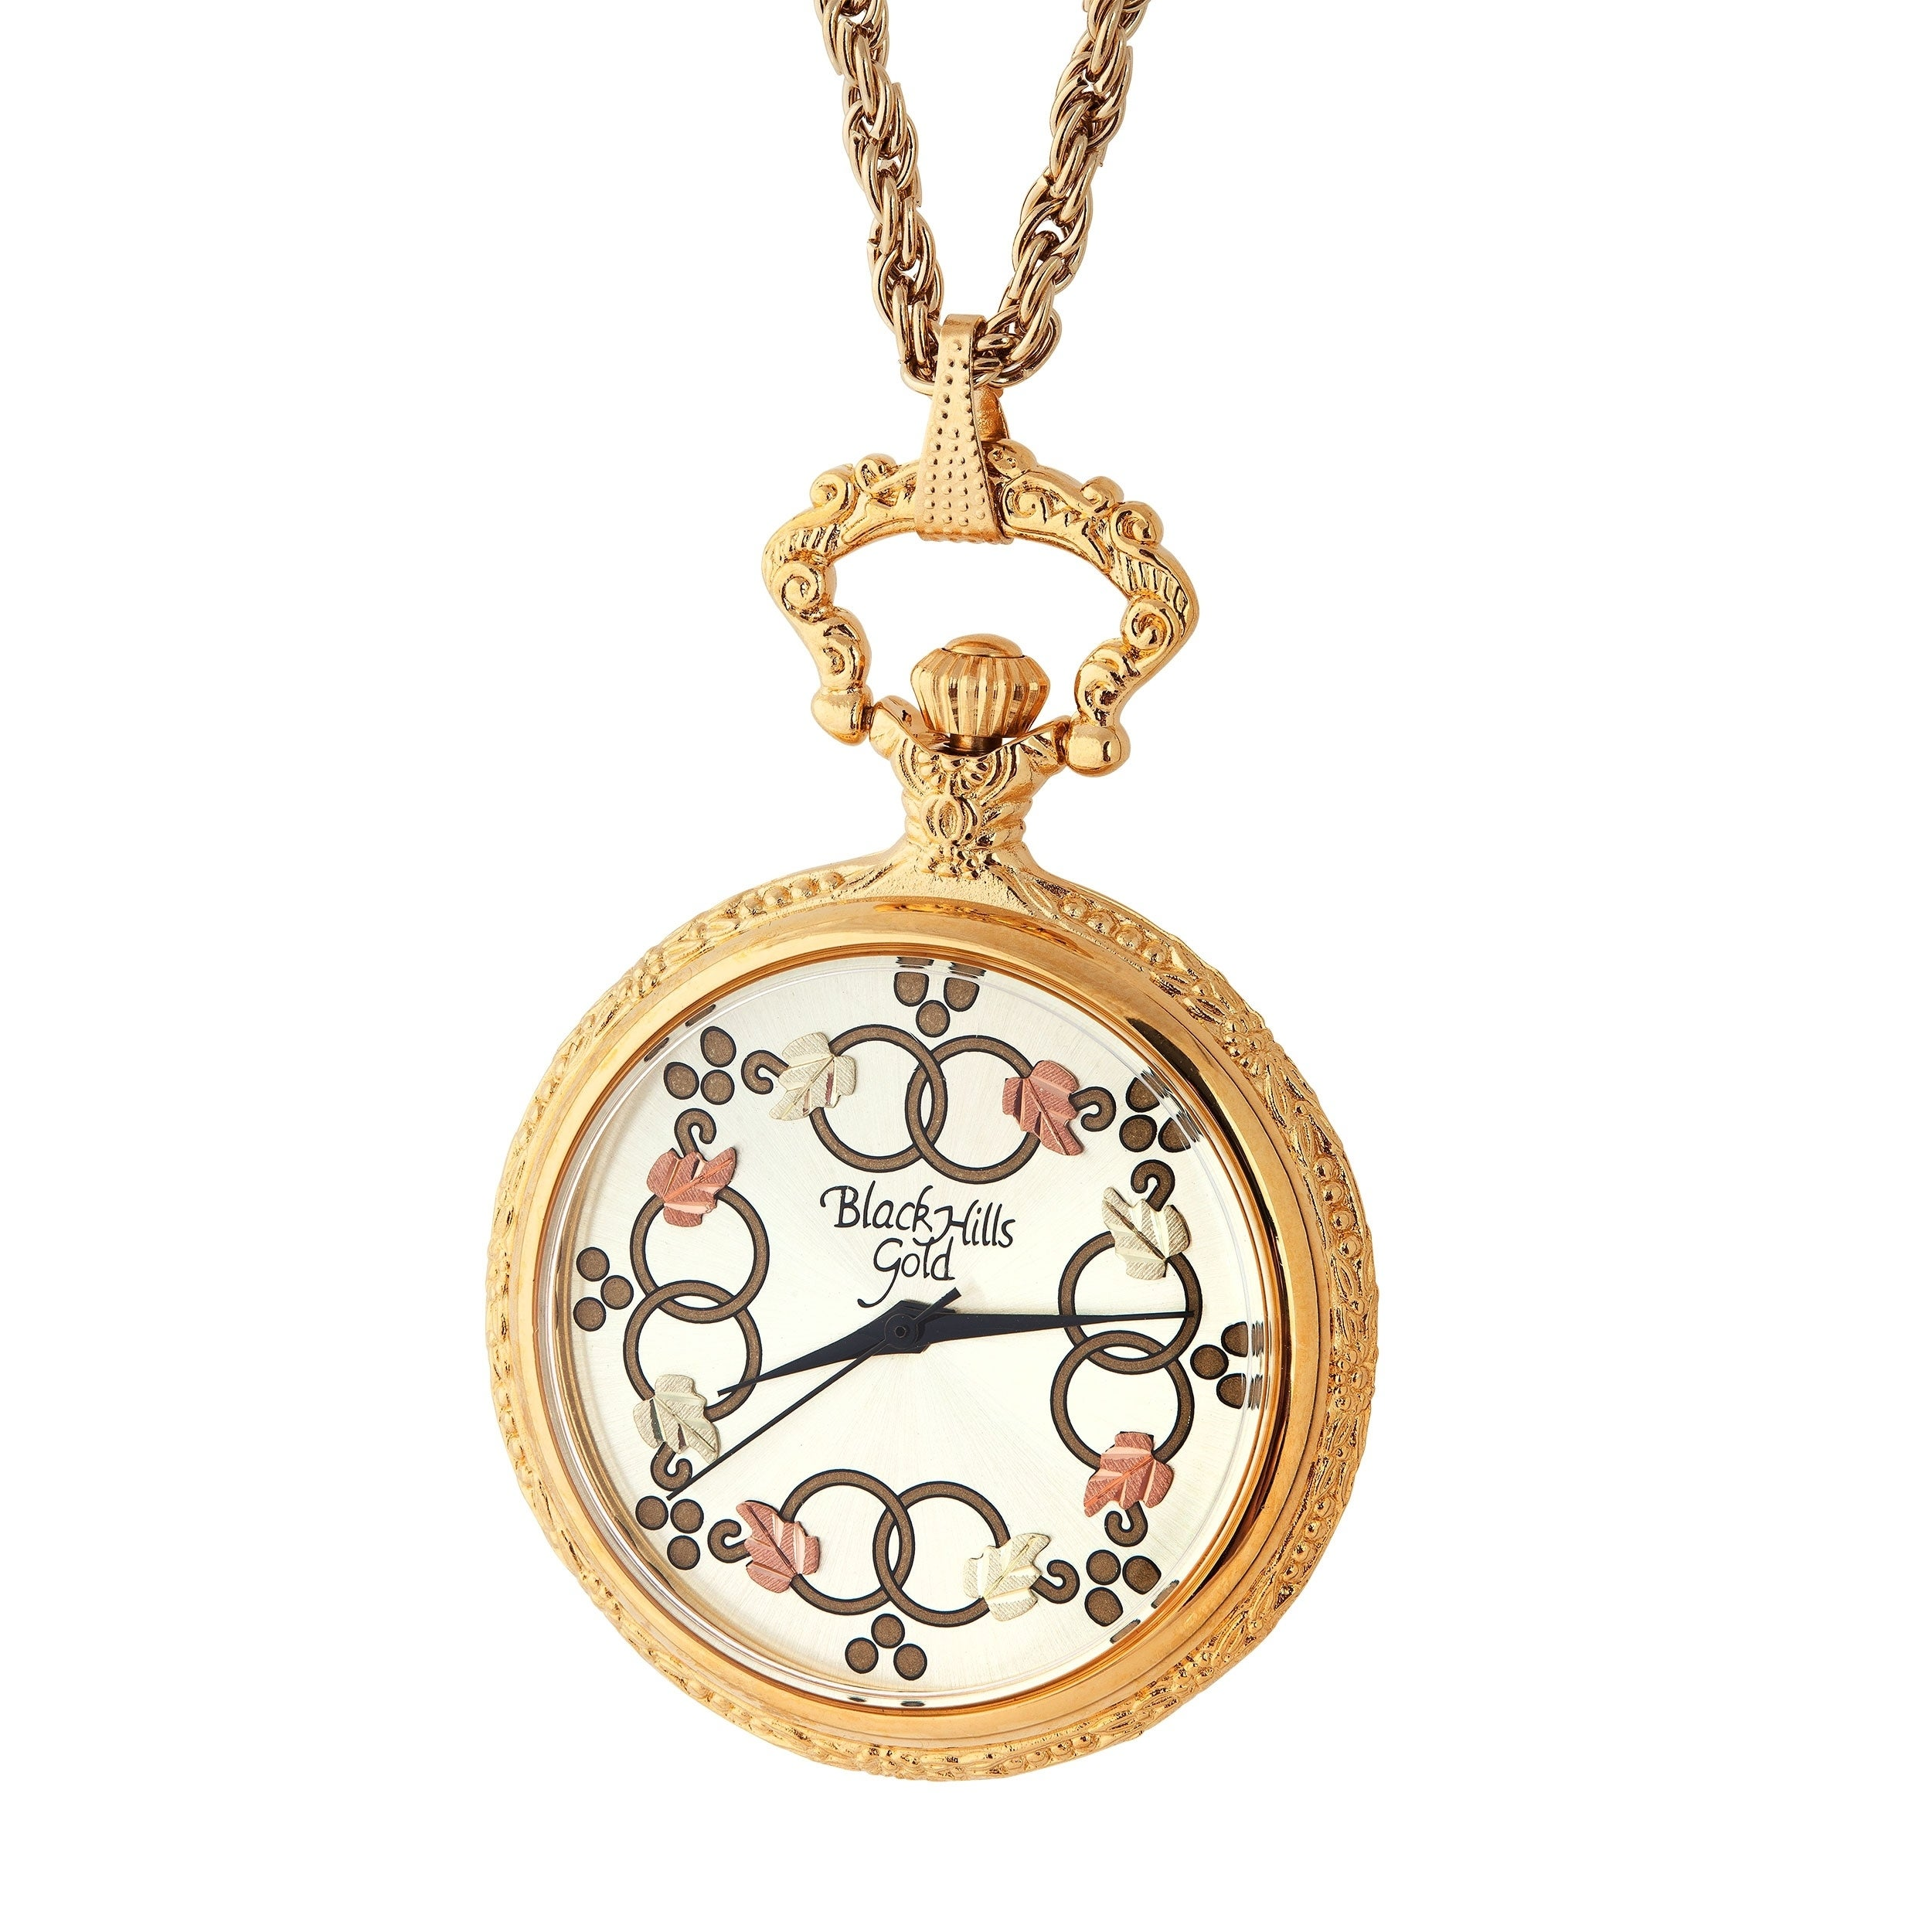 Ladies black hills gold pendant watch ebay ladies black hills gold pendant watch aloadofball Image collections